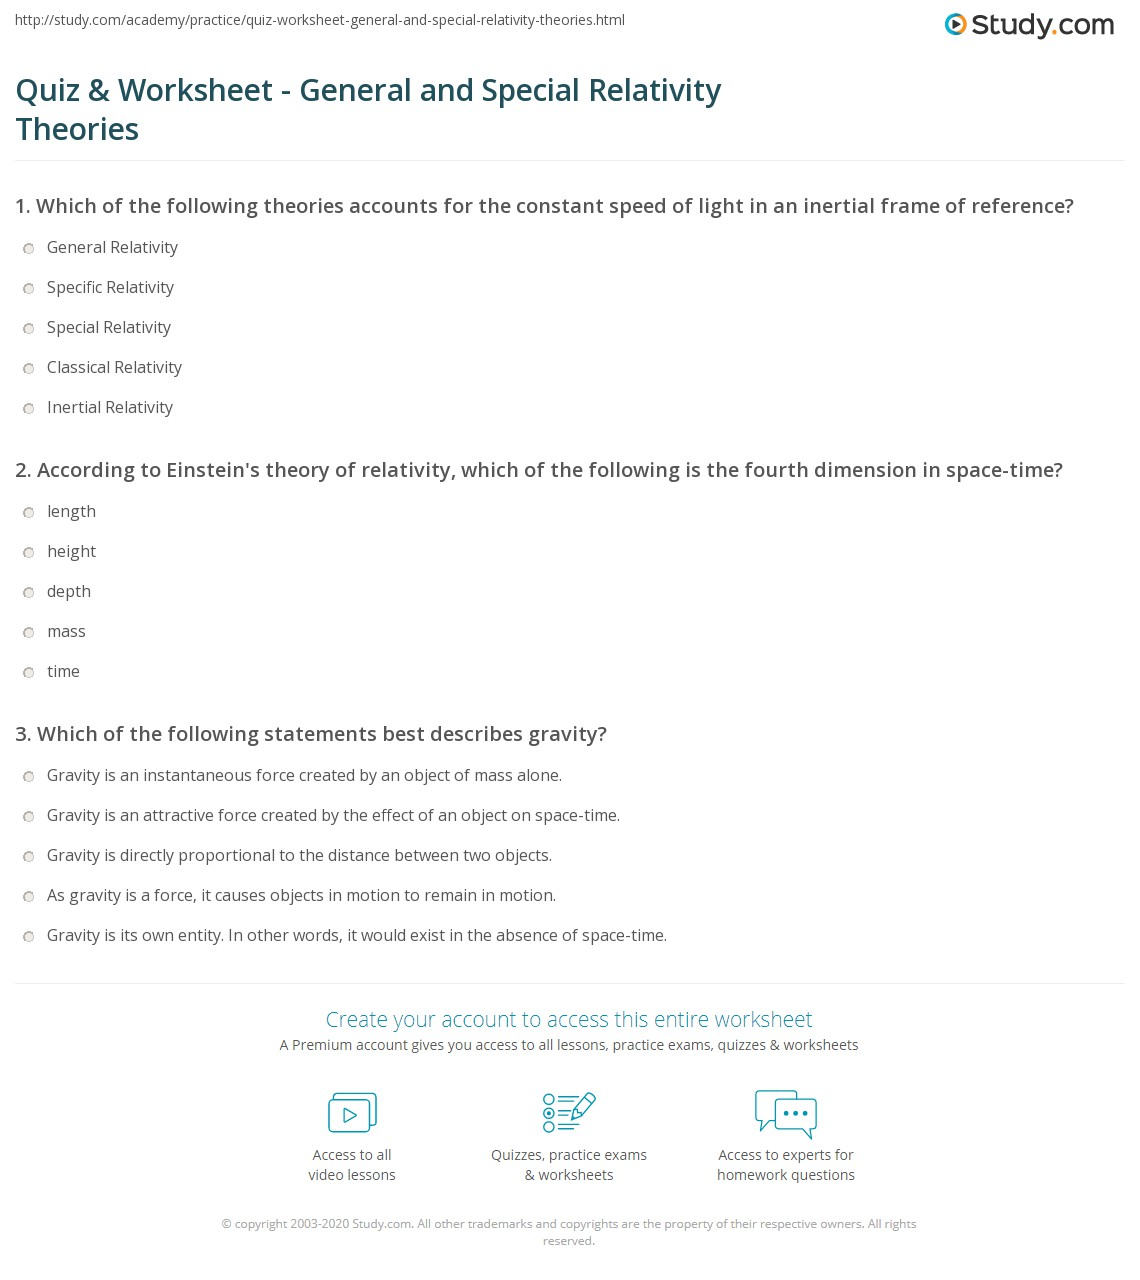 Quiz & Worksheet - General and Special Relativity Theories | Study.com